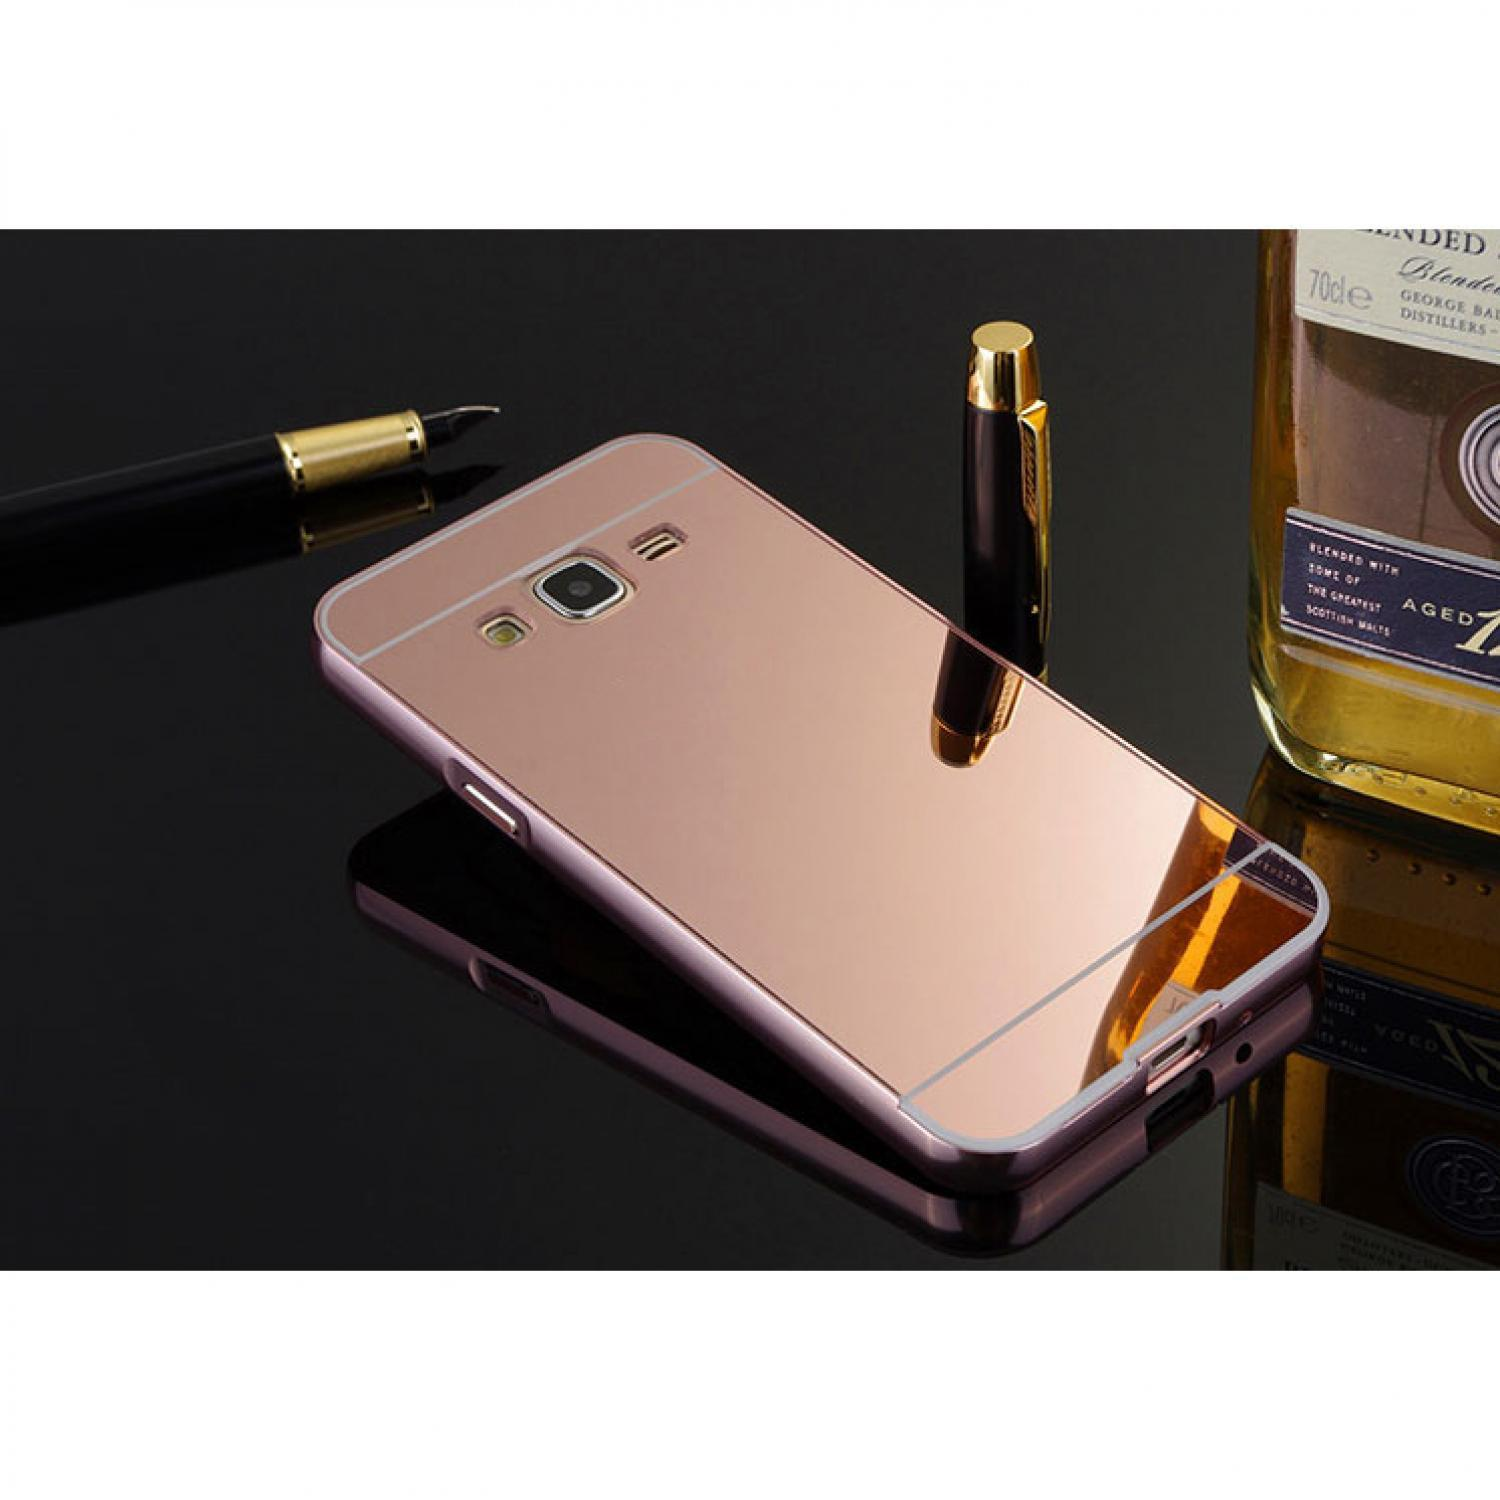 Casing Hp Aluminium Bumper Hardcase with Mirror Back Cover for Samsung Murah Lucu